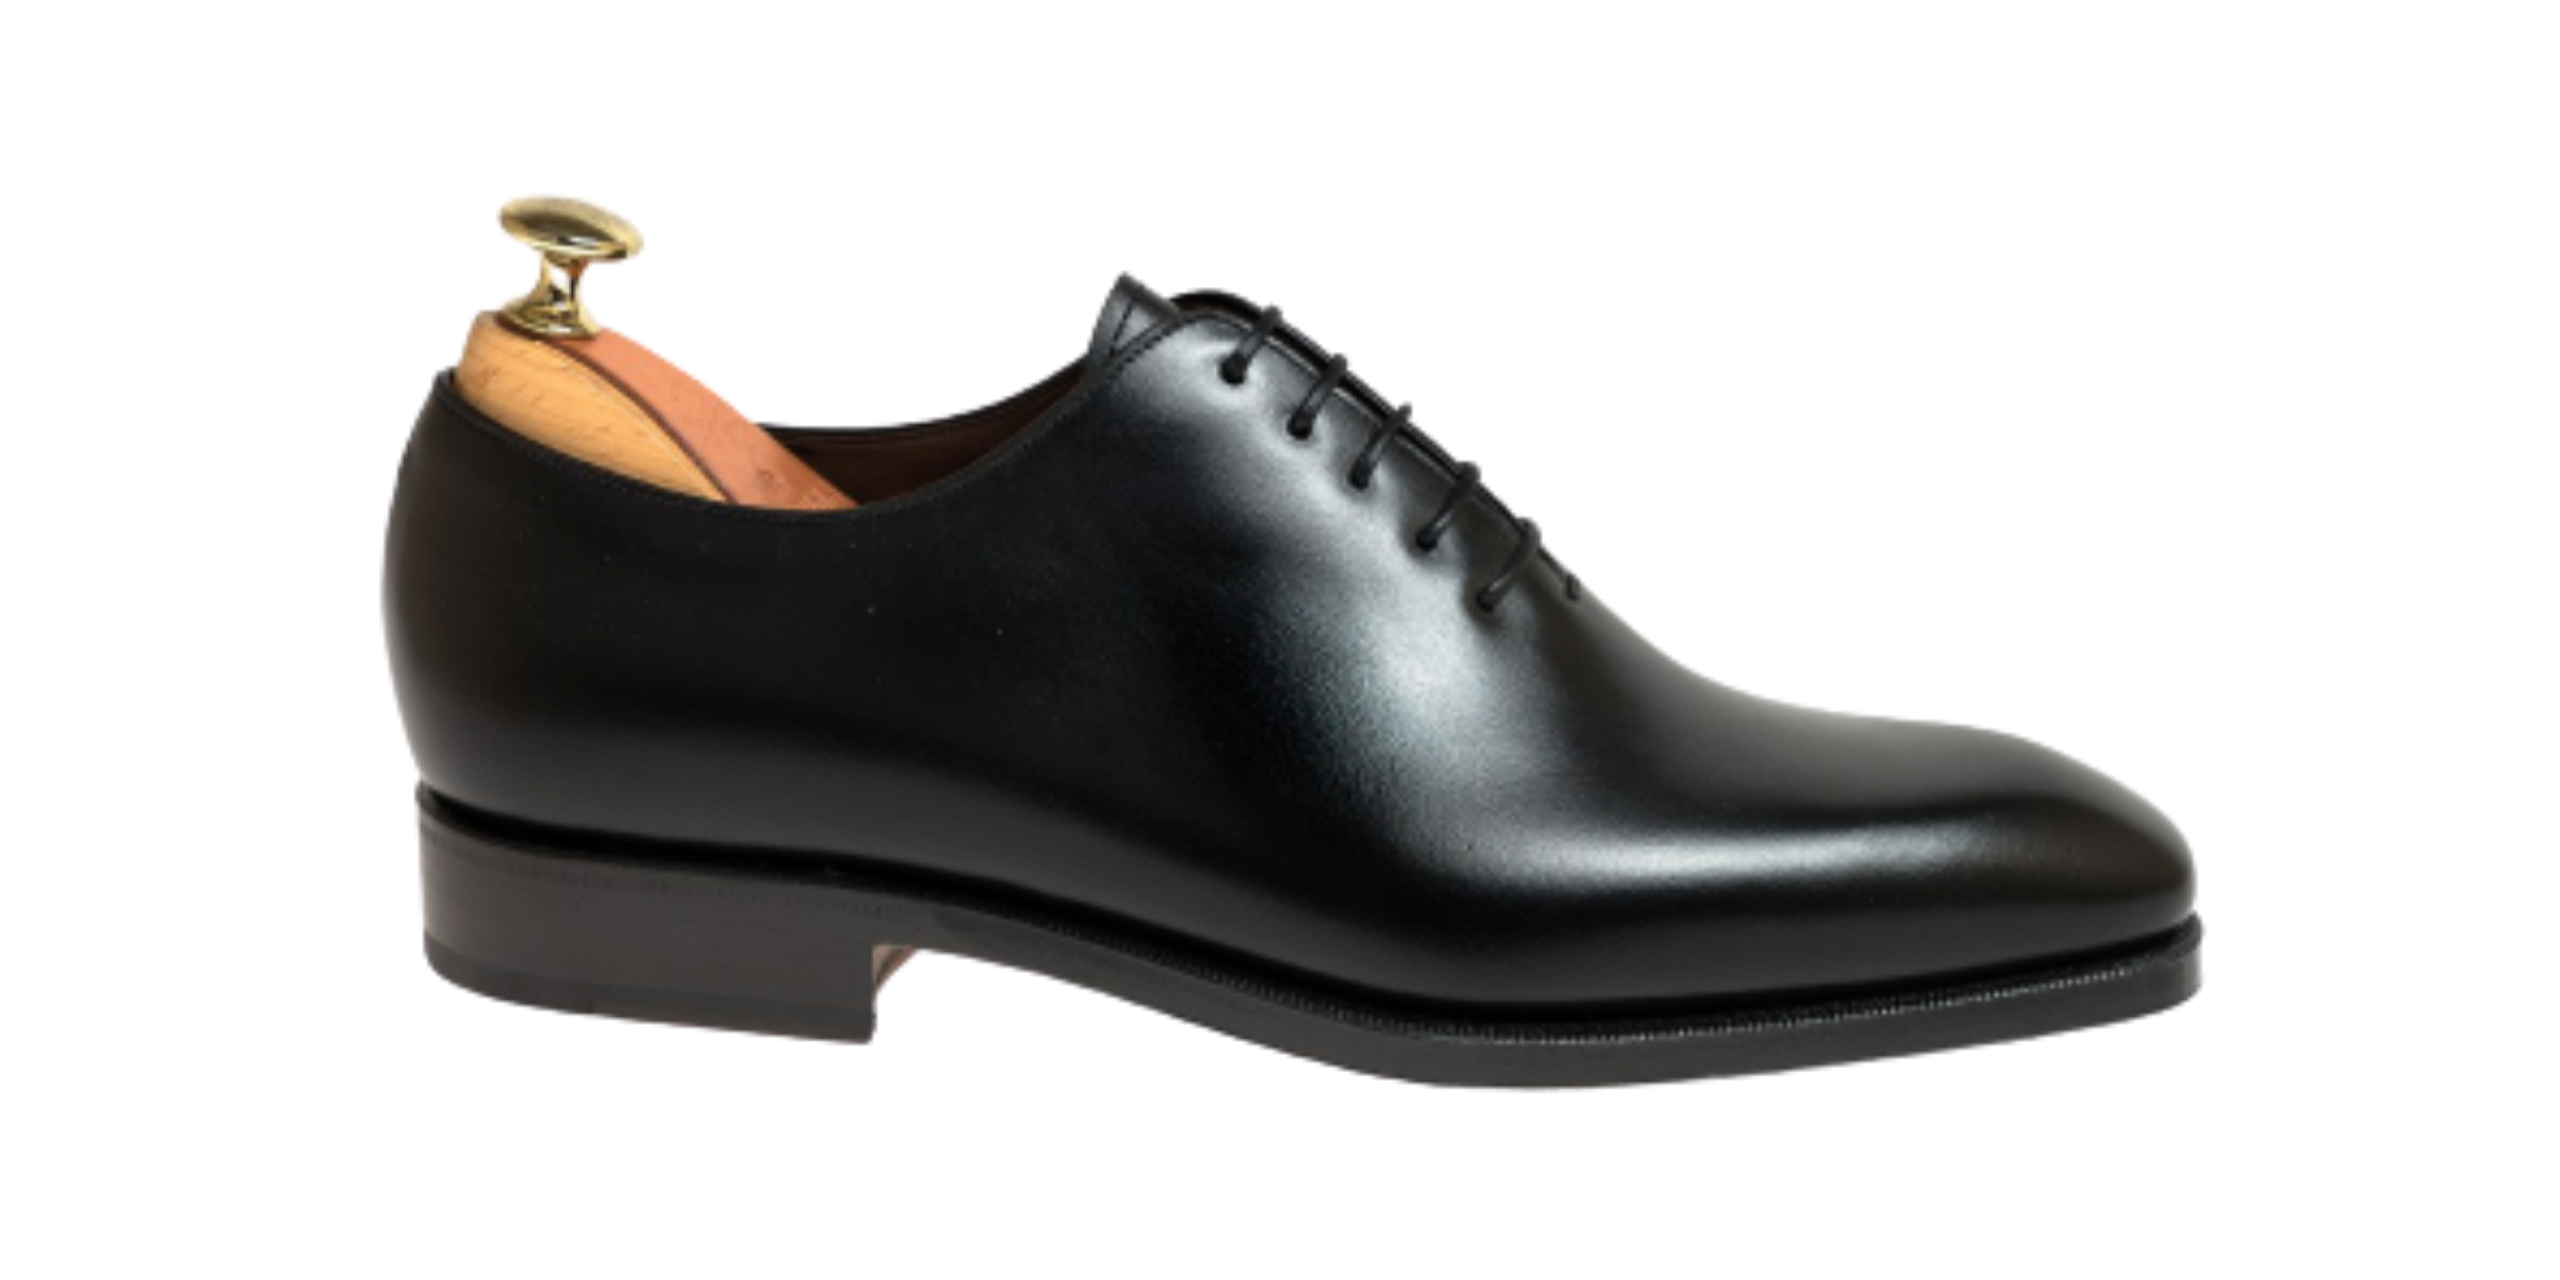 Whole cut — Types of Men's Formal Shoes